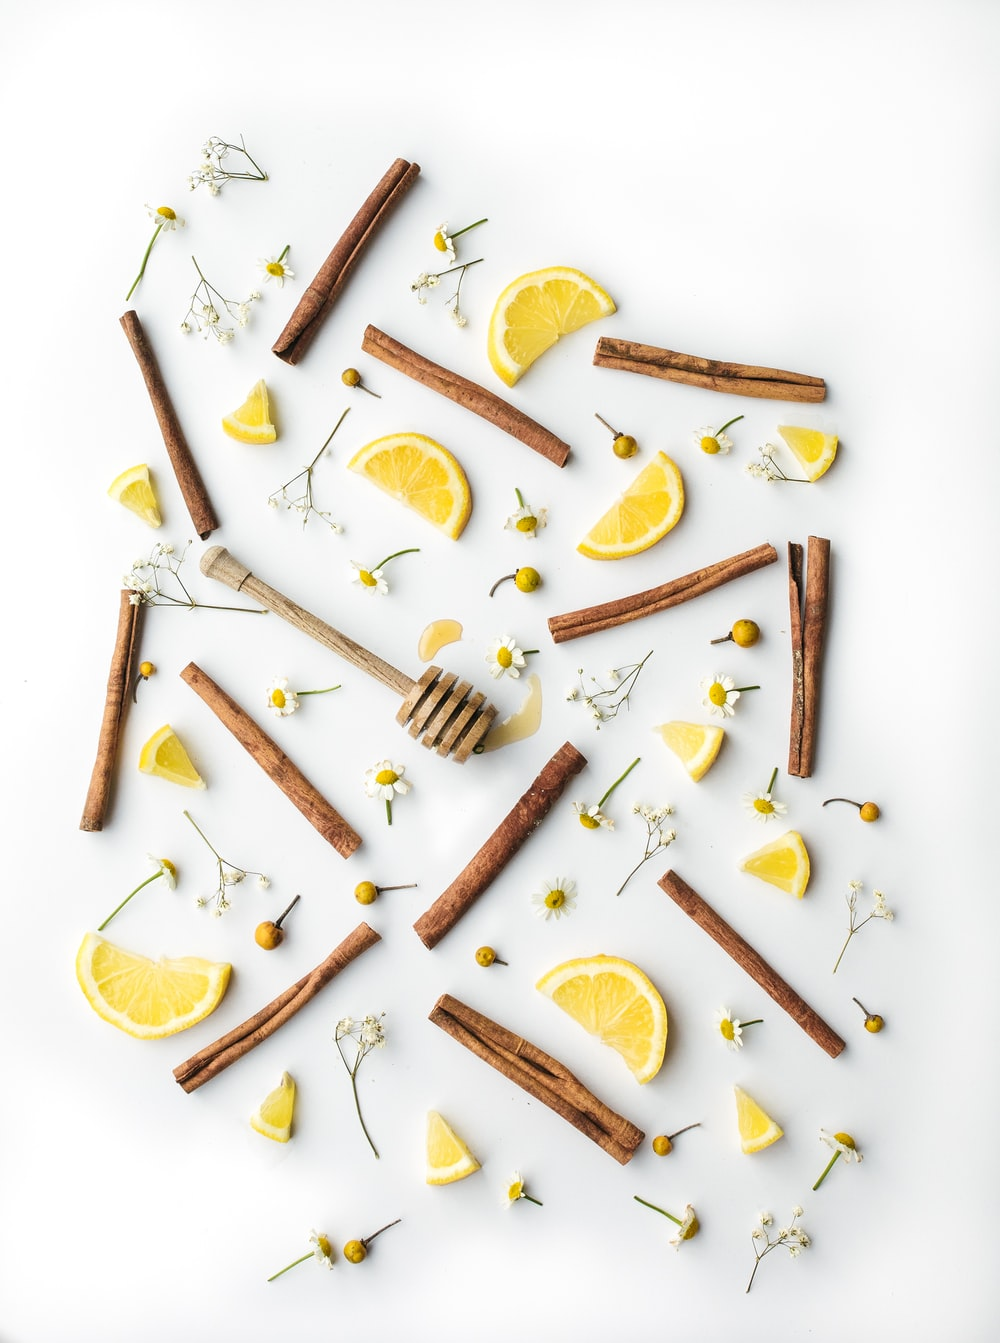 brown sticks and slices of lemons